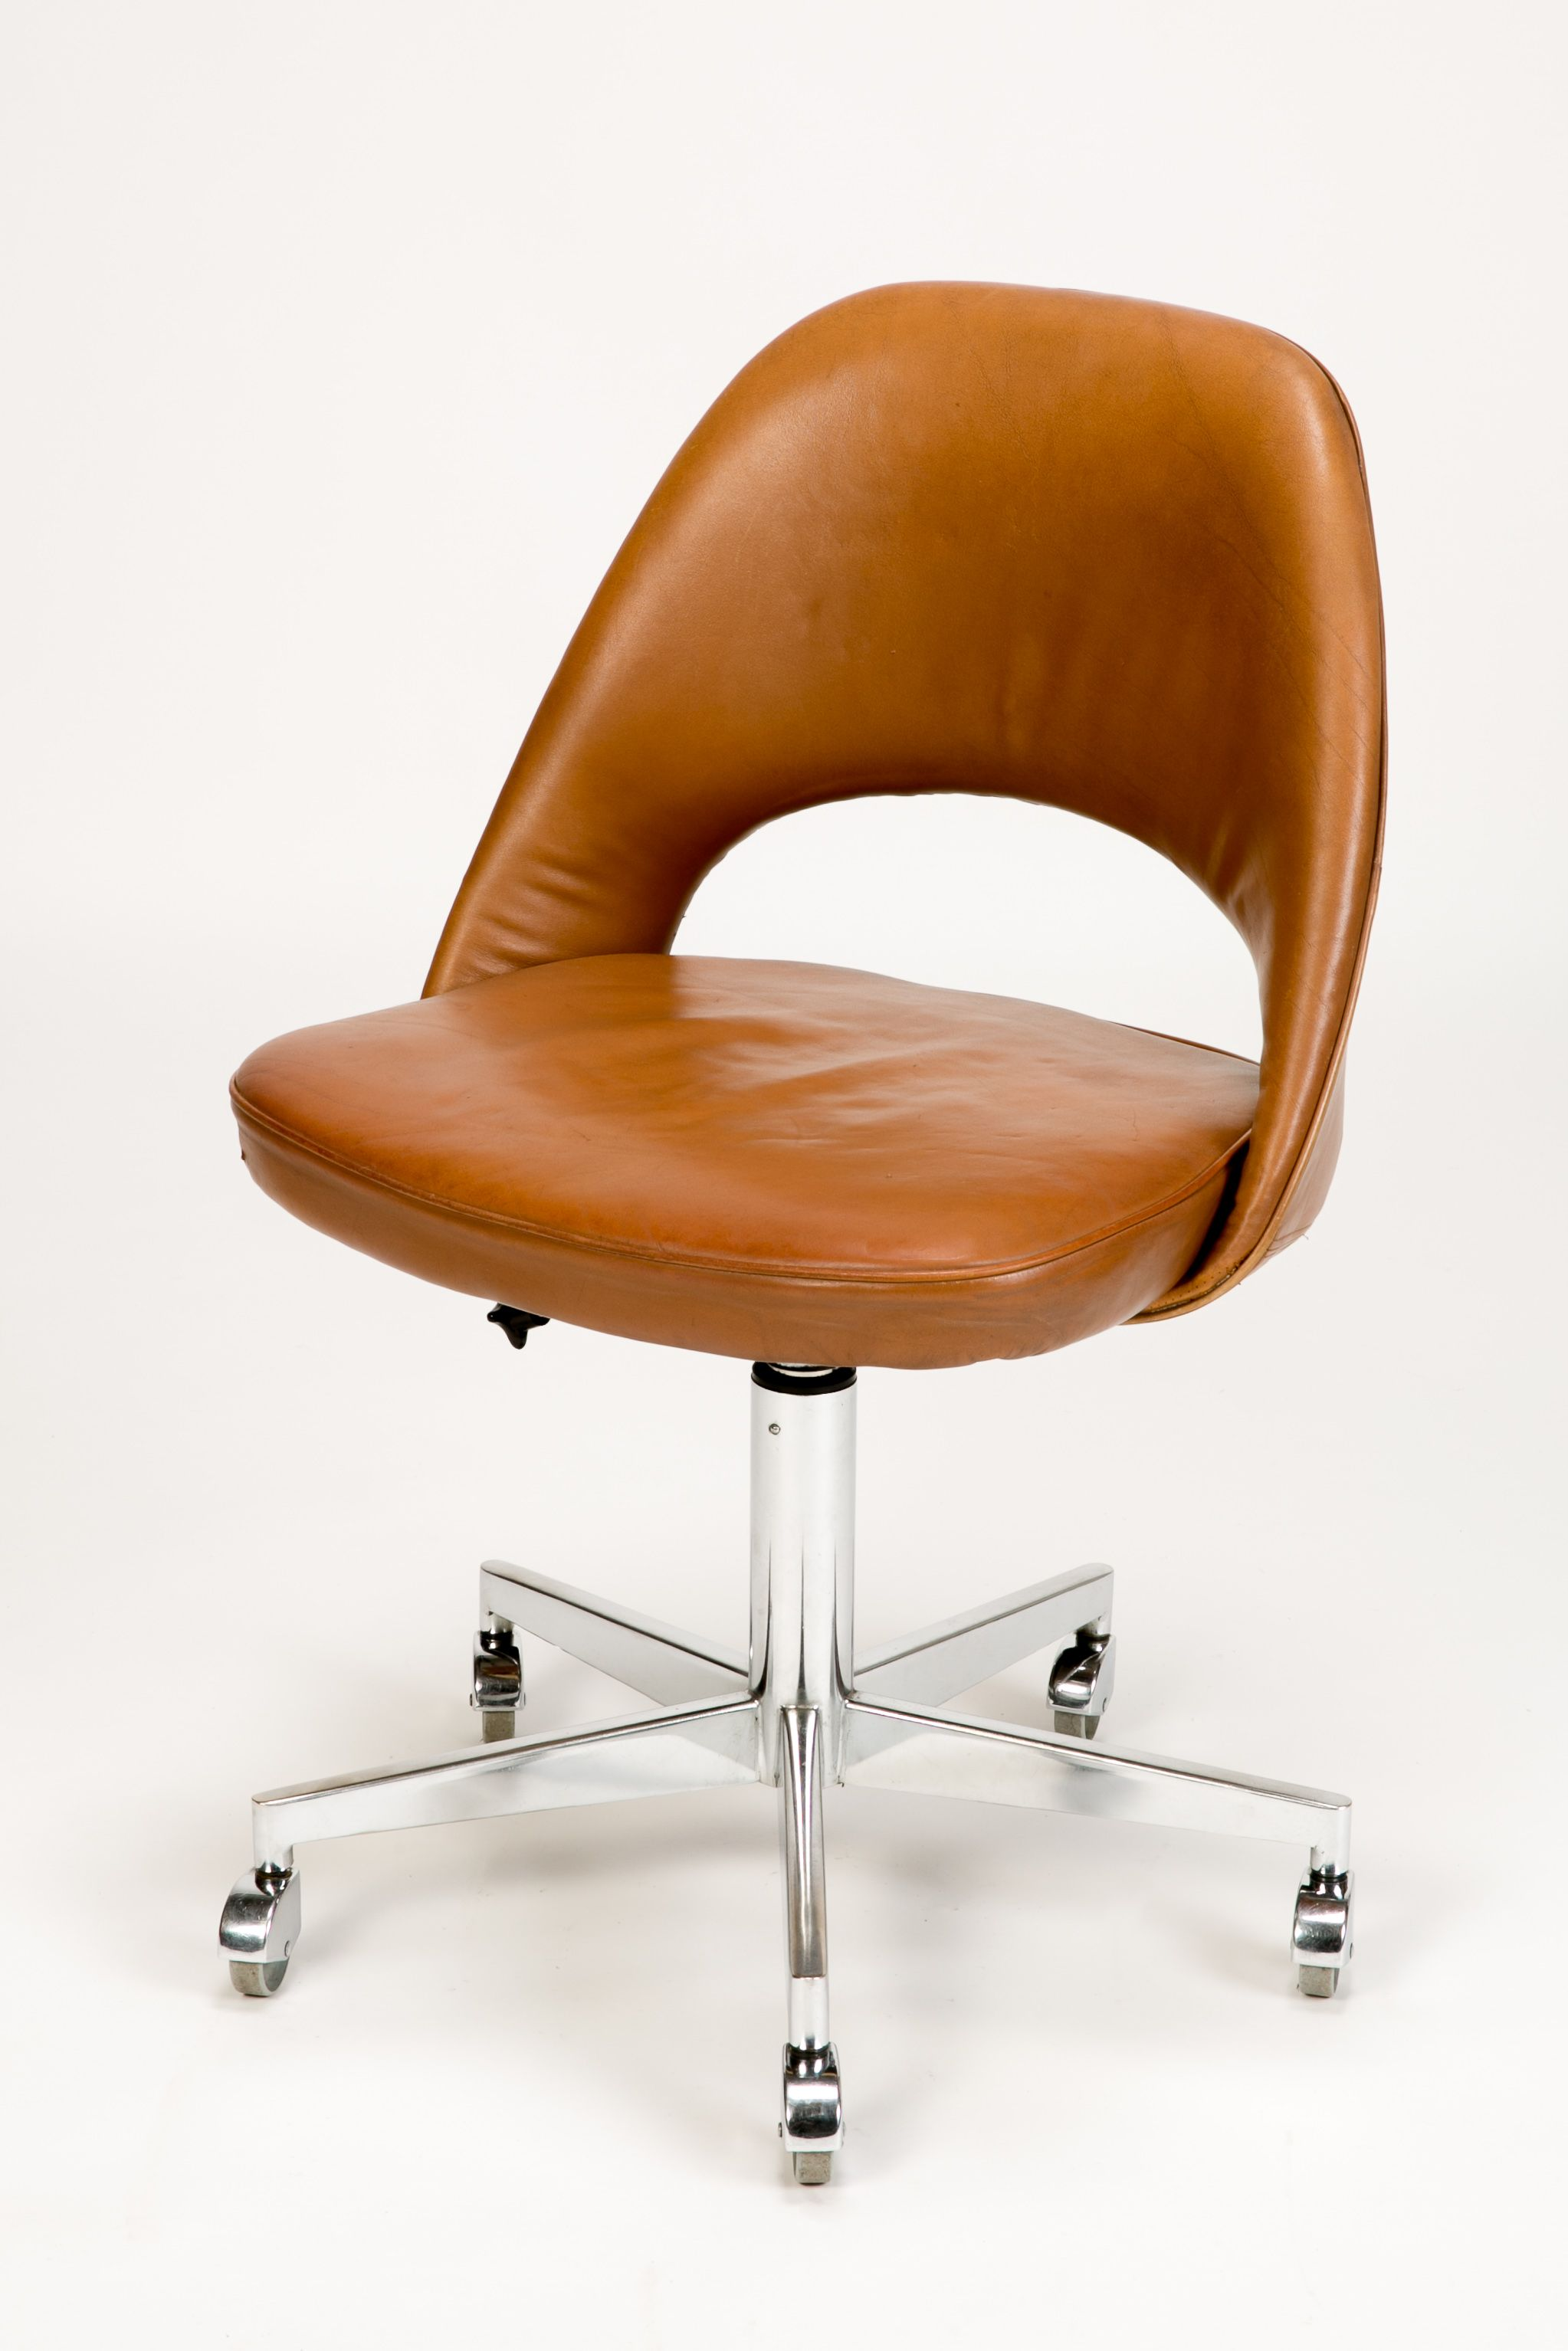 Gentil Eero Saarinen Office Chair Leather